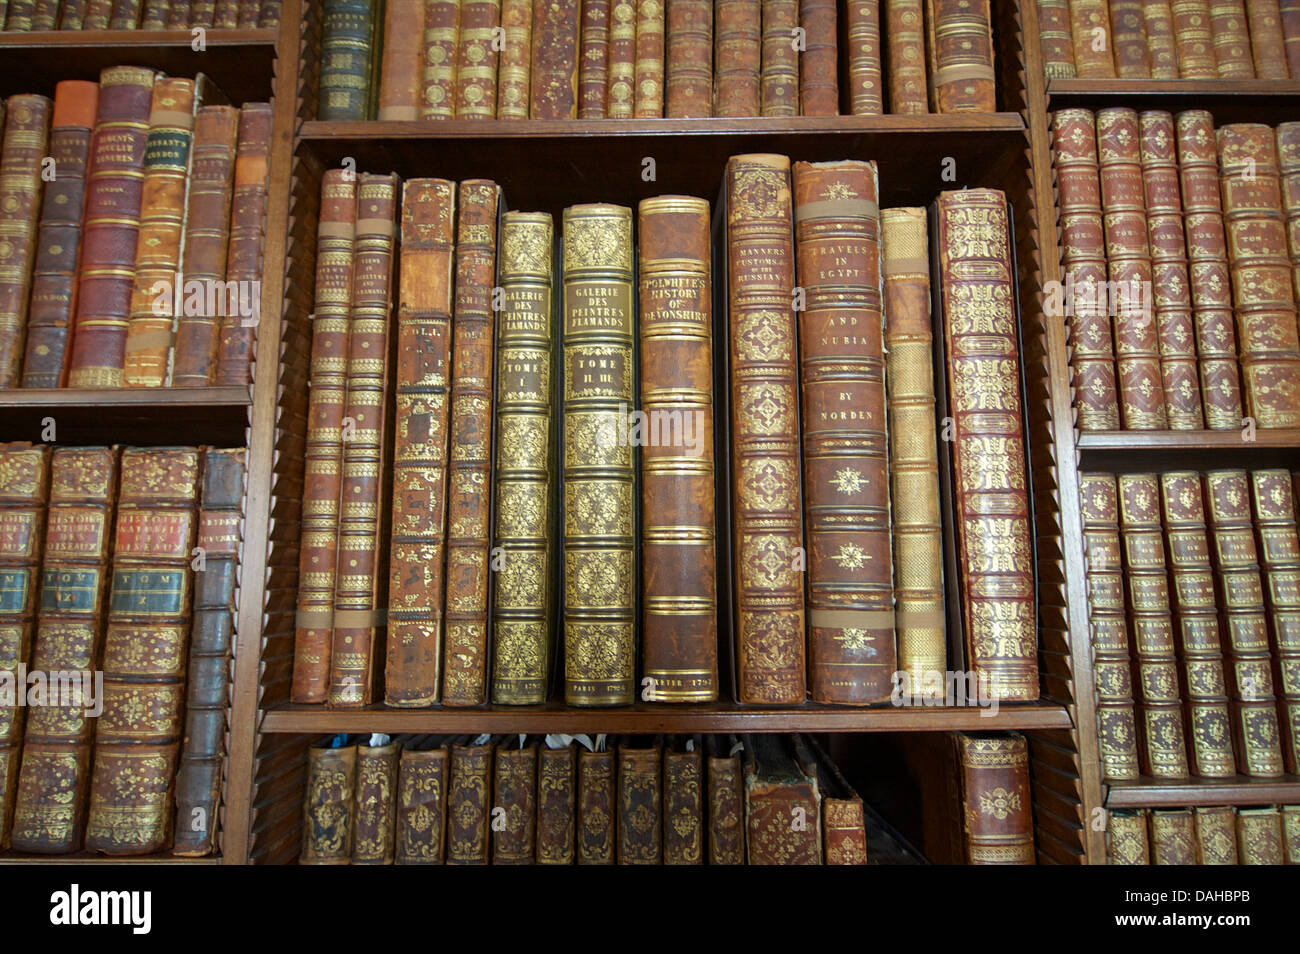 Antiquarian books an a library - Stock Image